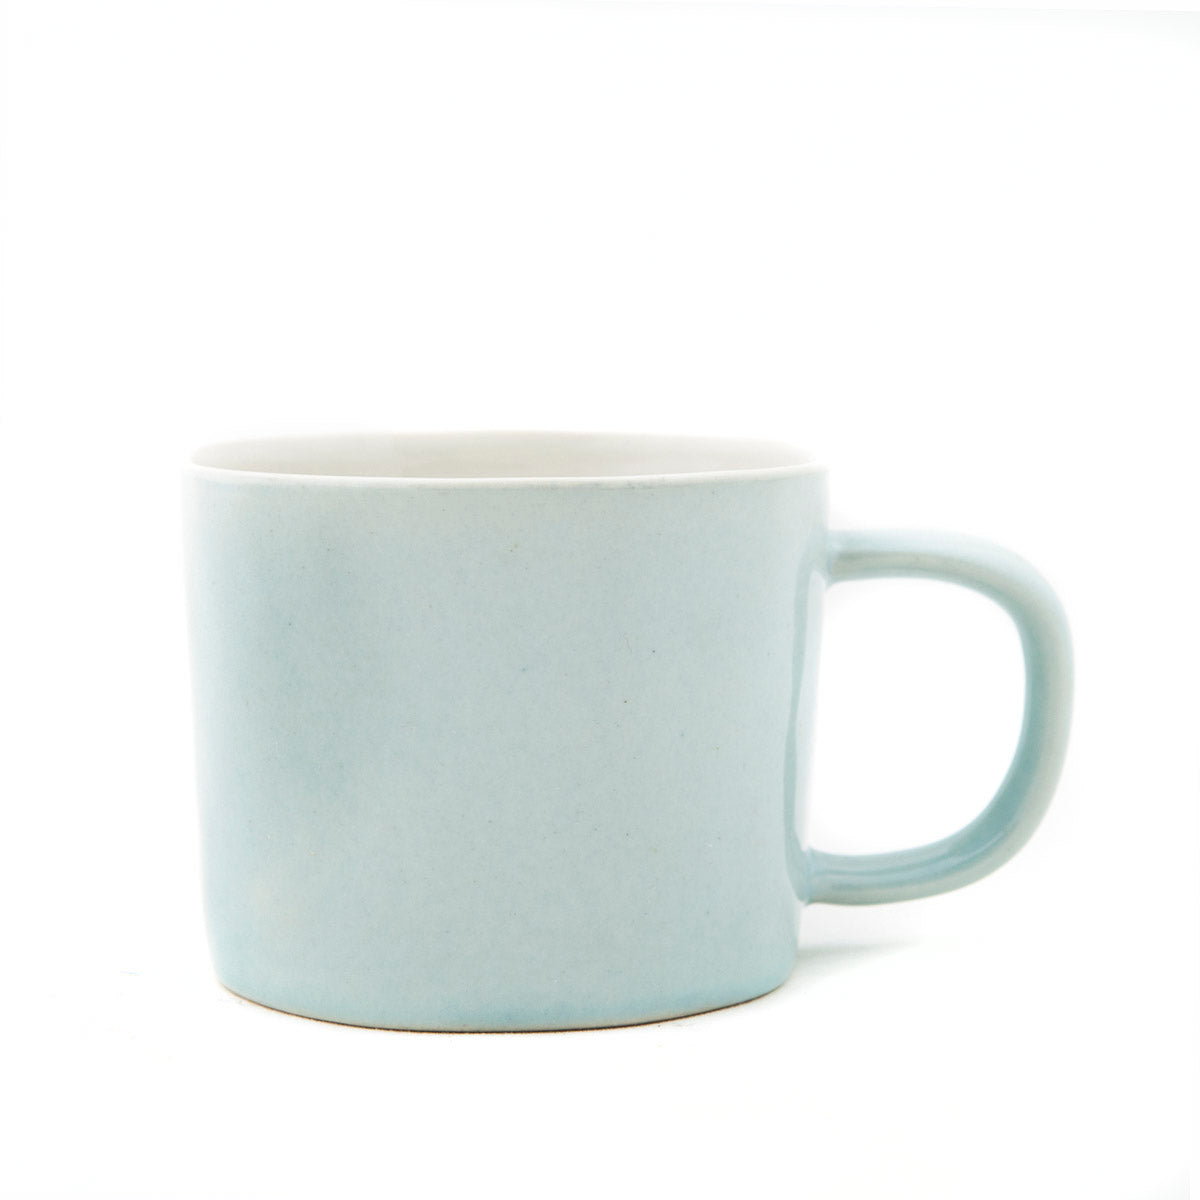 Gorgeous Pale Blue Ceramic Mugs by Quail's Egg - A Fly Went By